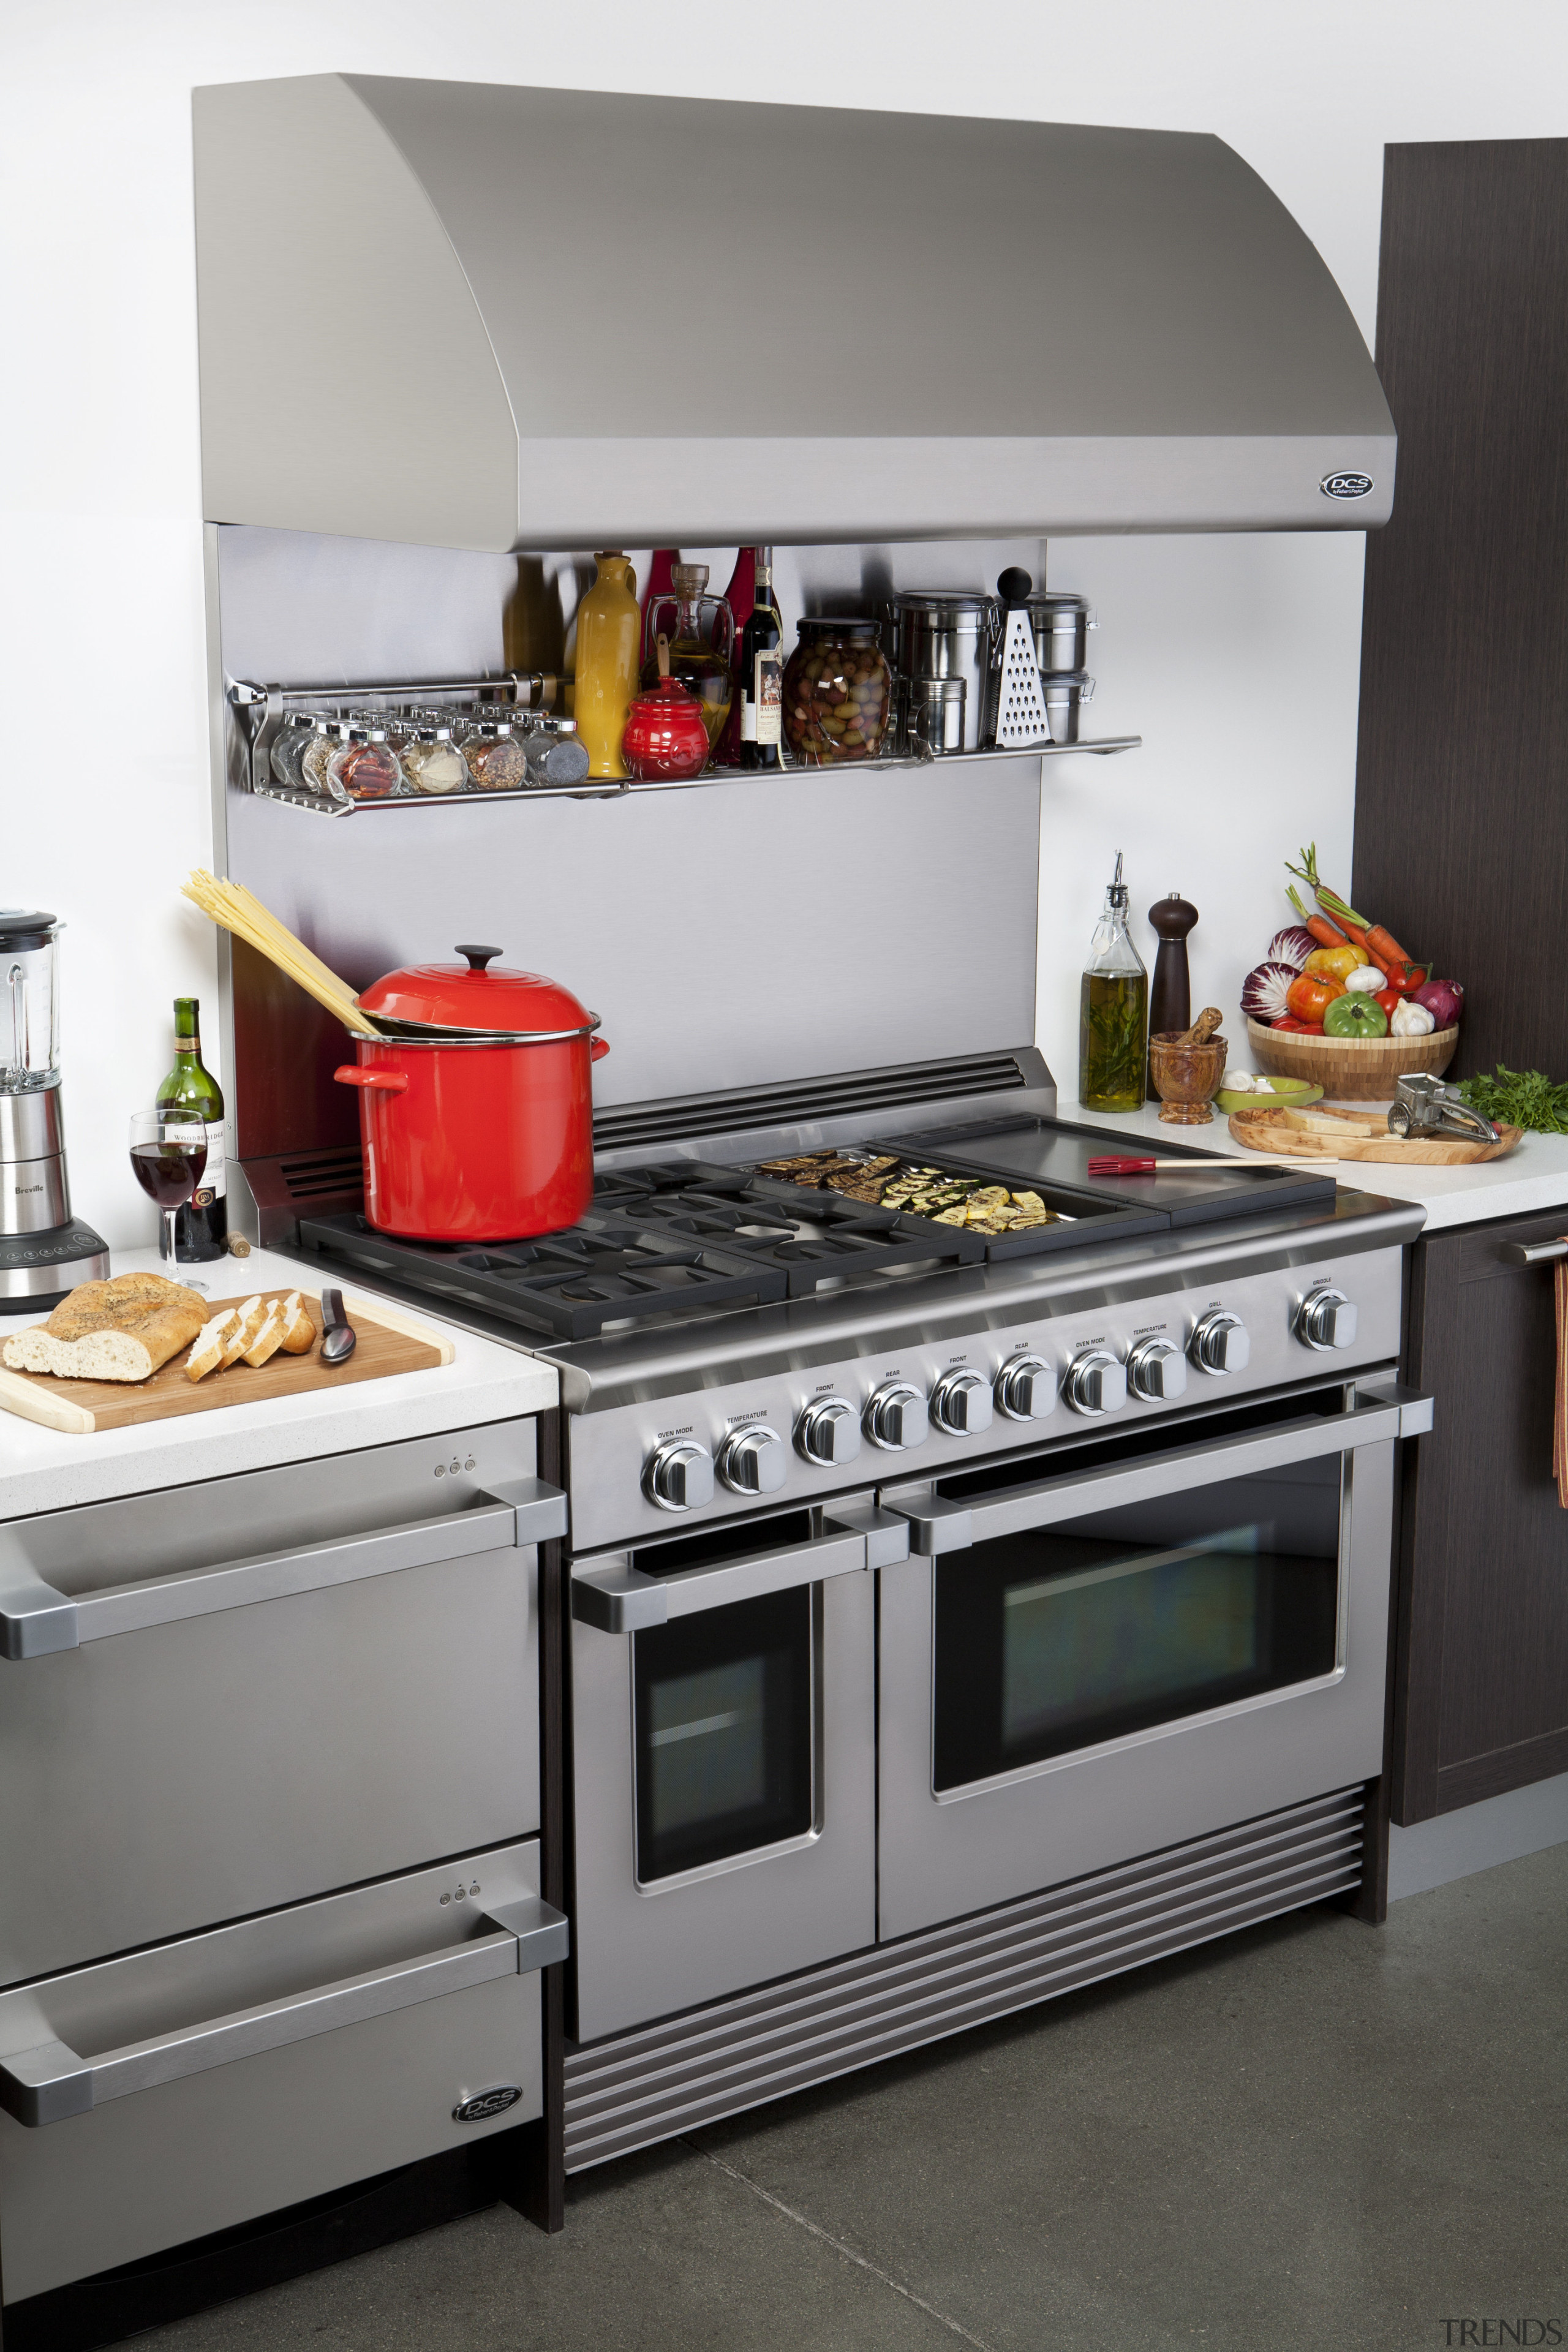 View of the new indoor kitchen collection by countertop, gas stove, home appliance, kitchen, kitchen appliance, kitchen stove, major appliance, oven, small appliance, gray, white, black